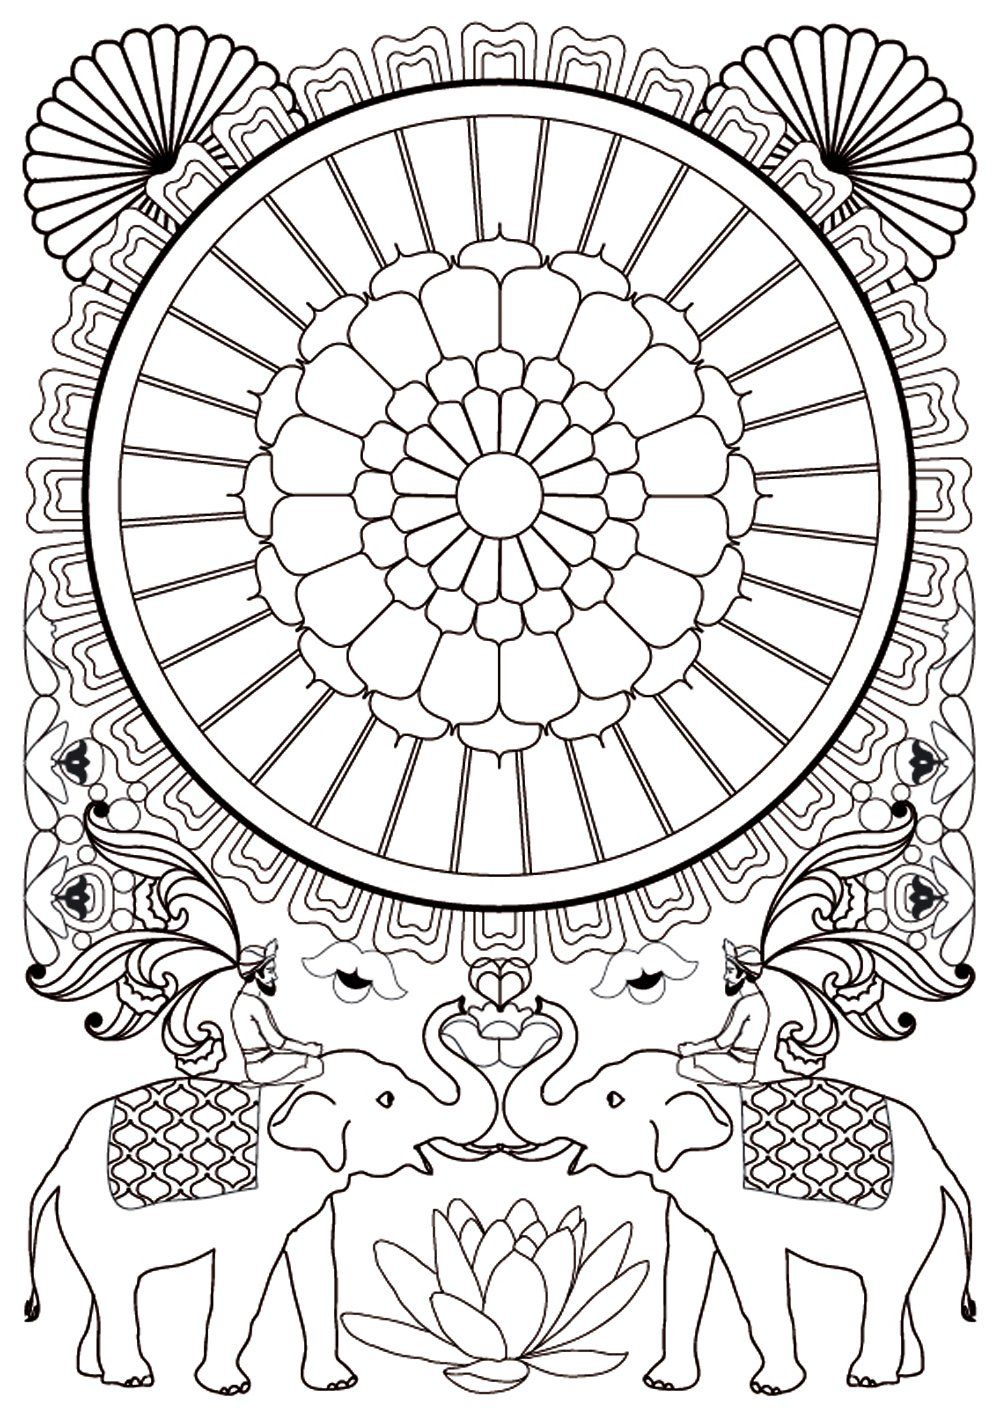 Zen colouring advanced art therapy collector edition - Art Therapie 100 Mandalas Anti Stress French Edition Sophie Leblanc